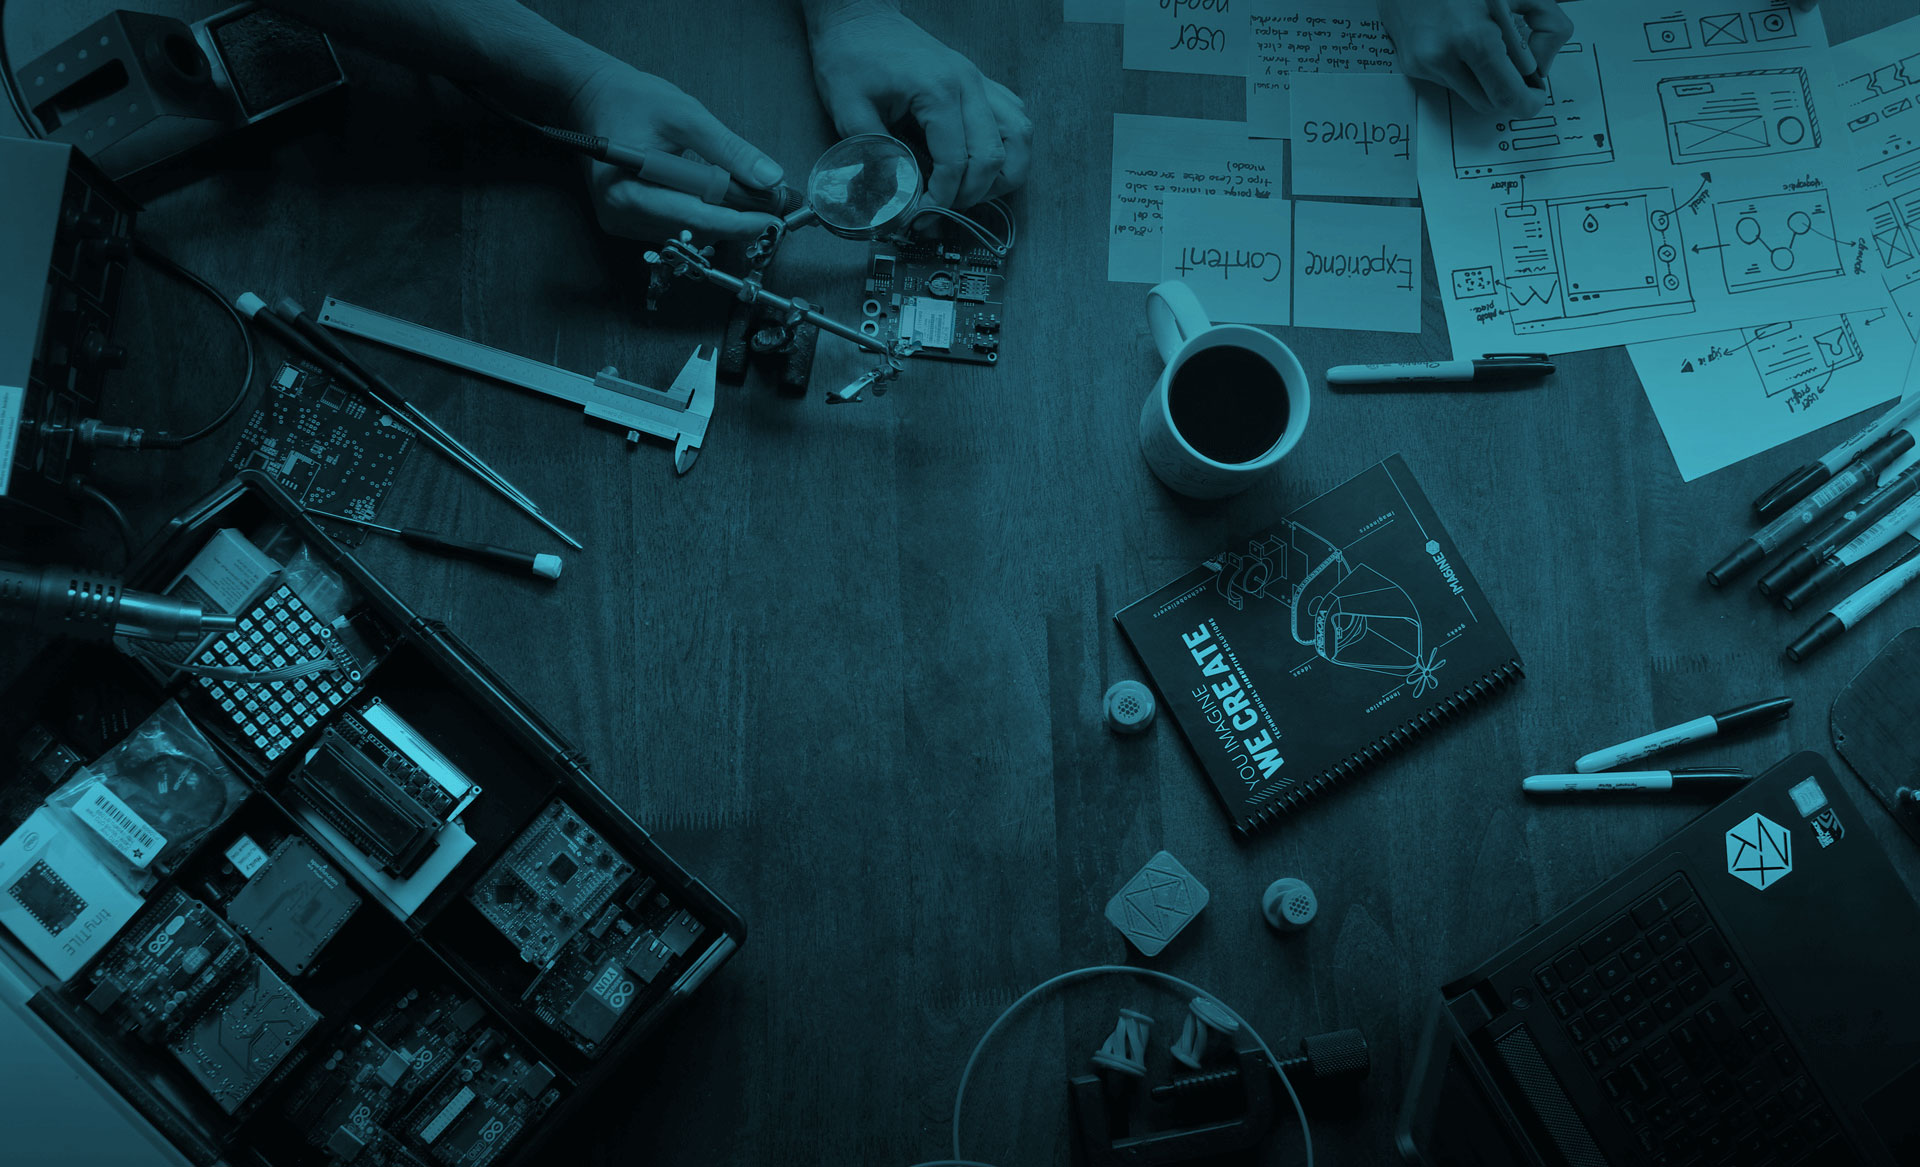 image of a desktop with electronics and design tools, and coffee